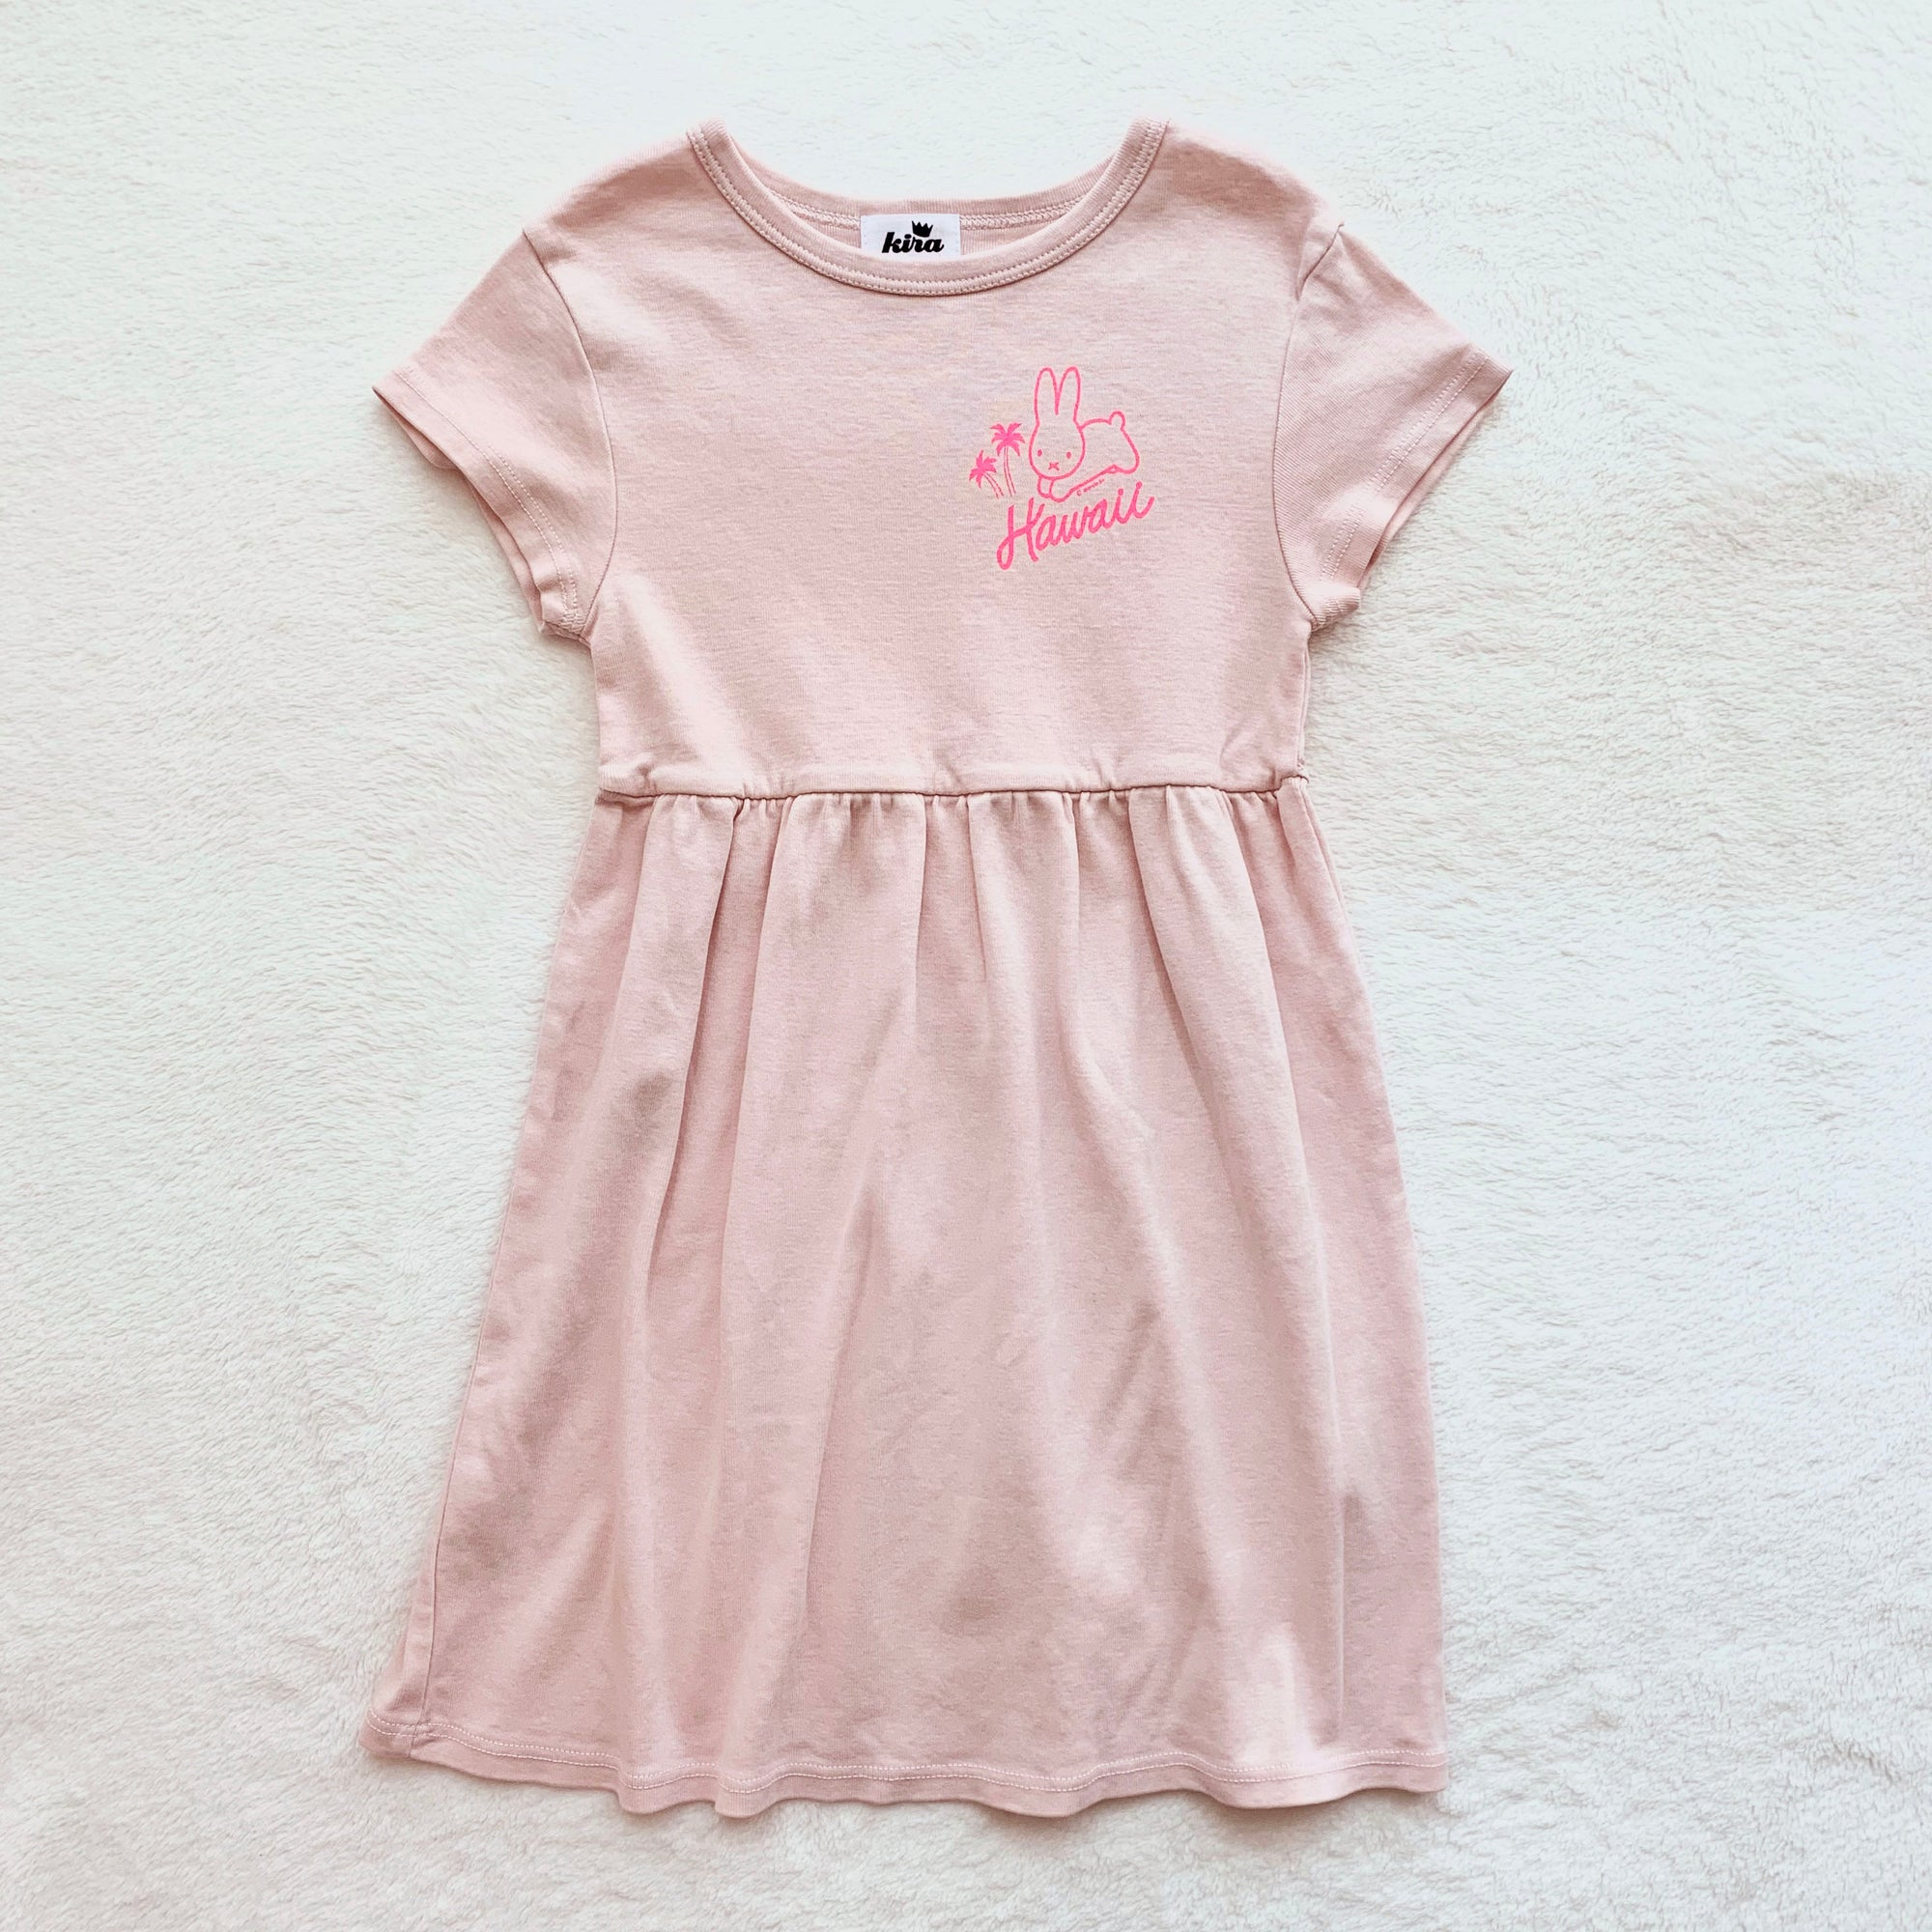 Miffy Palm Trees Baby Doll Dress, Powder Pink